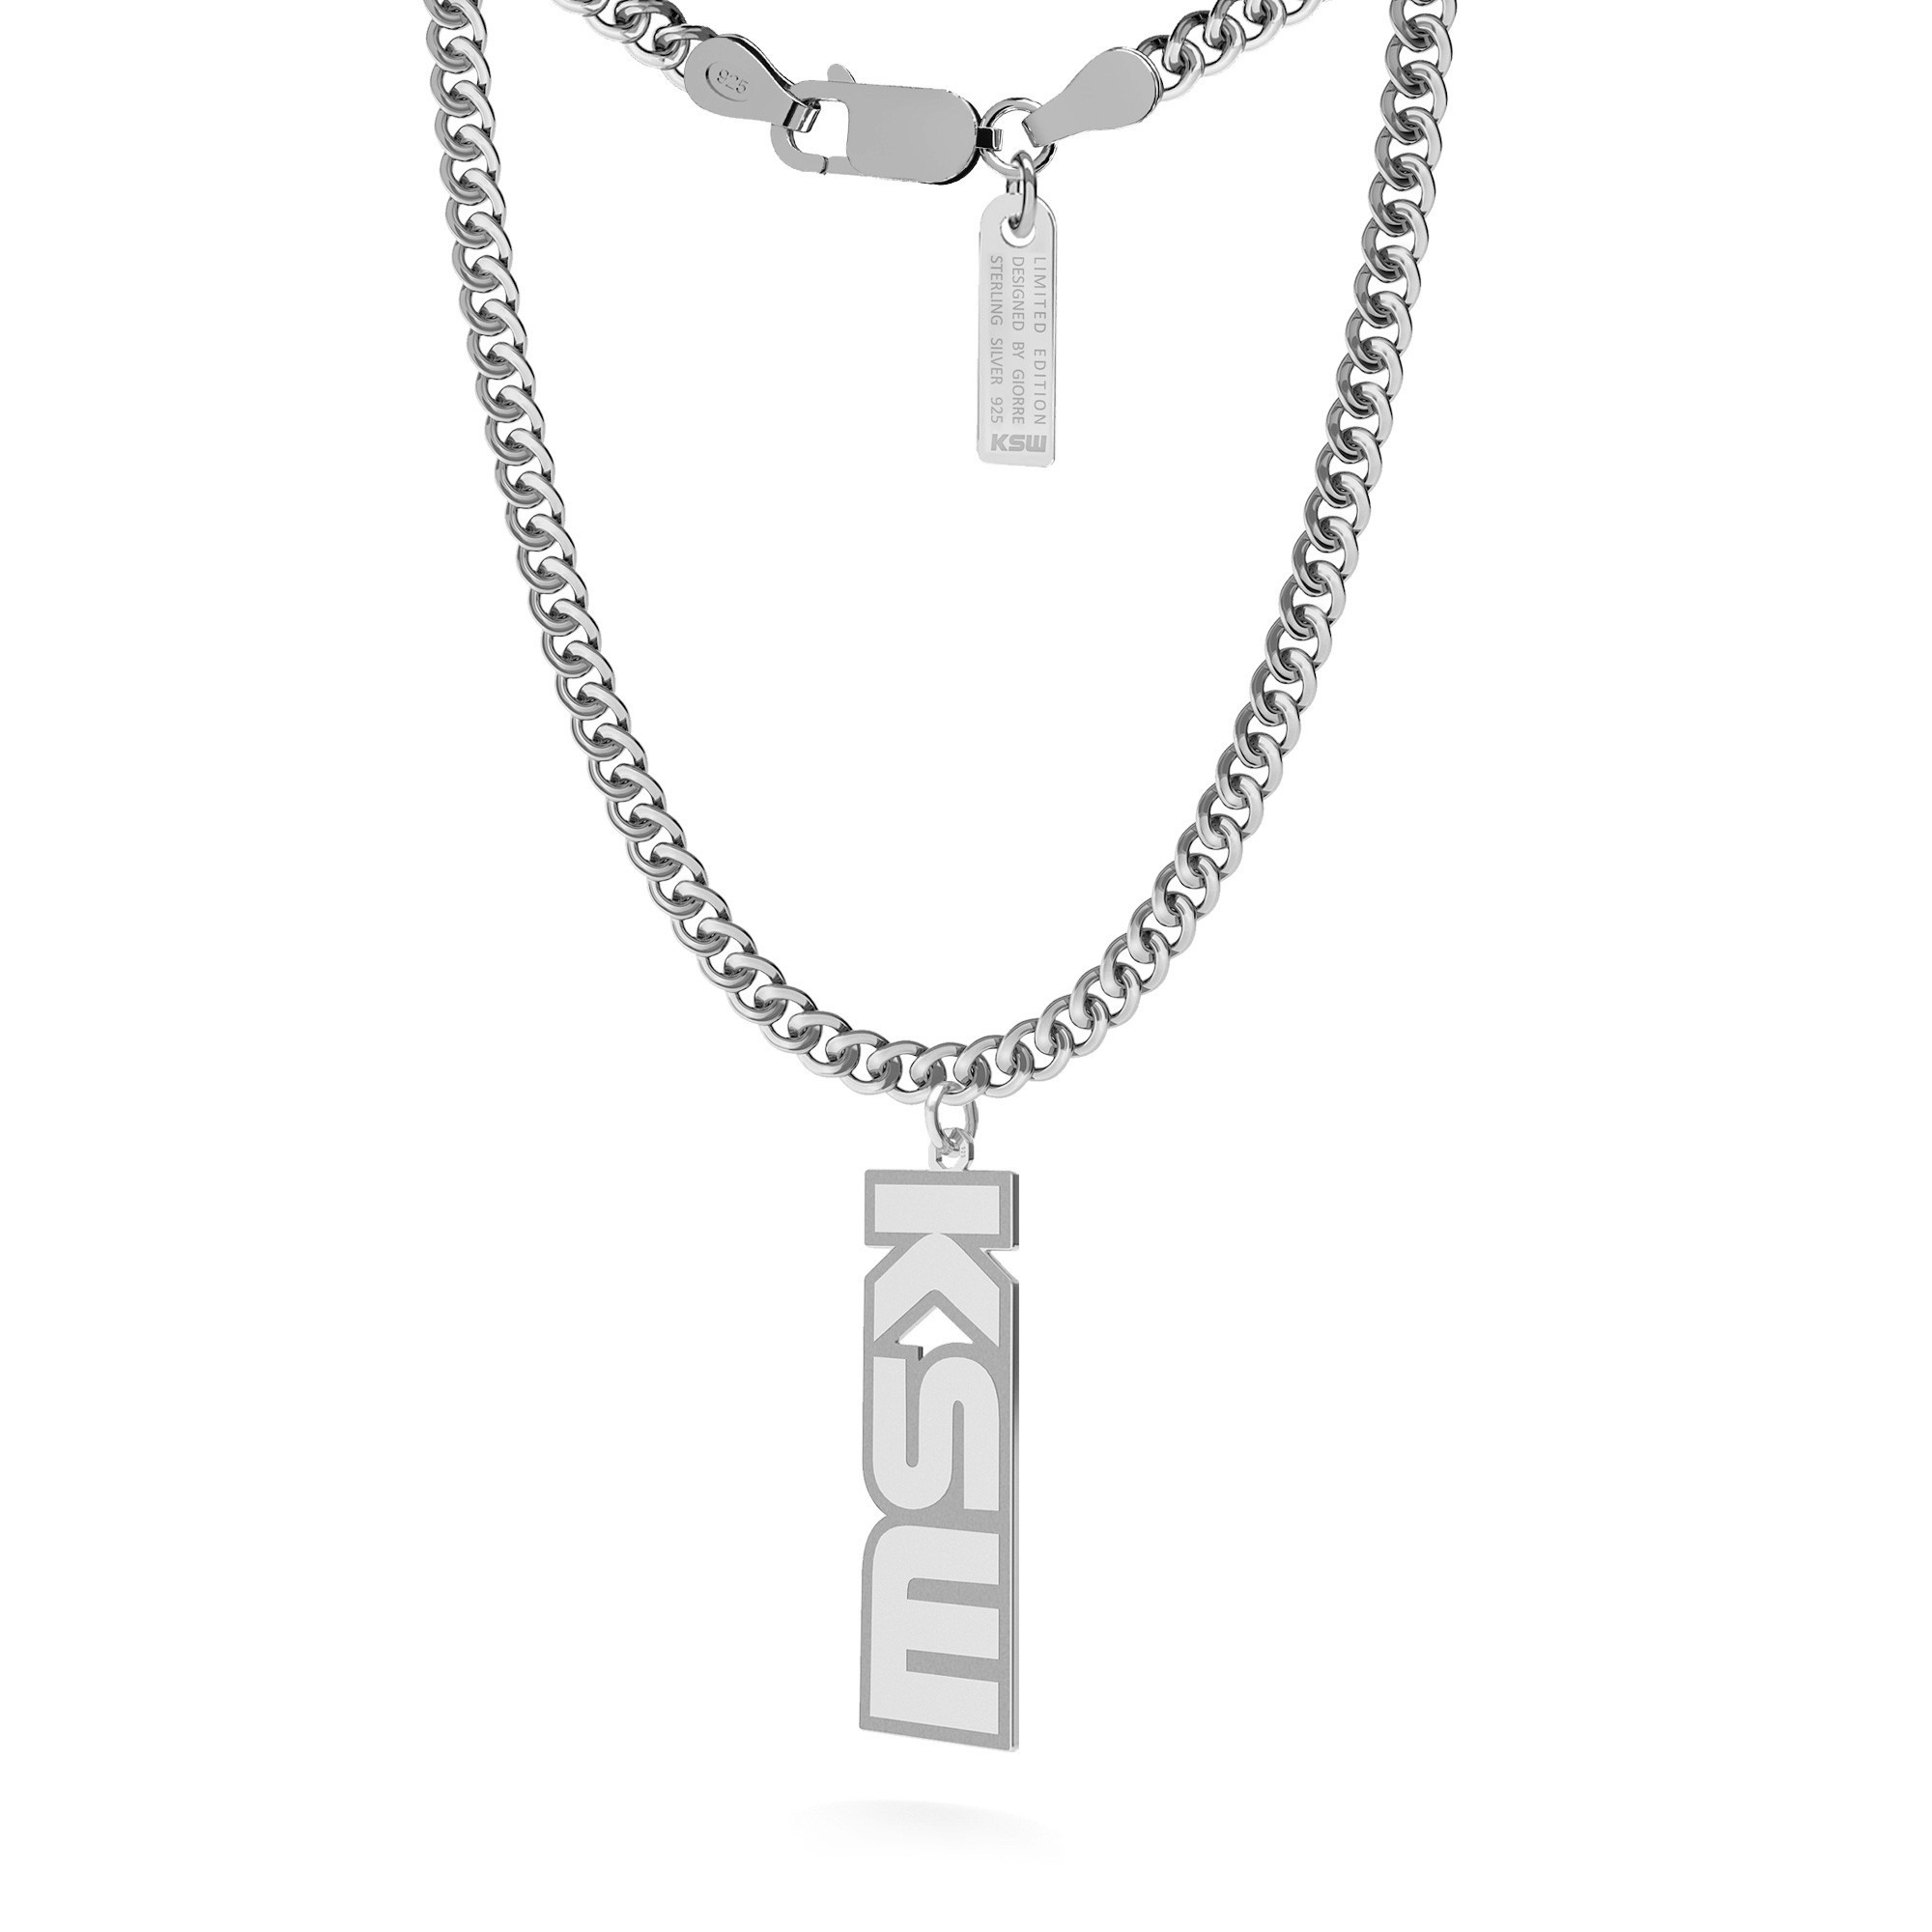 Silver verticale plate necklace, KSW sign, curb chain, silver 925